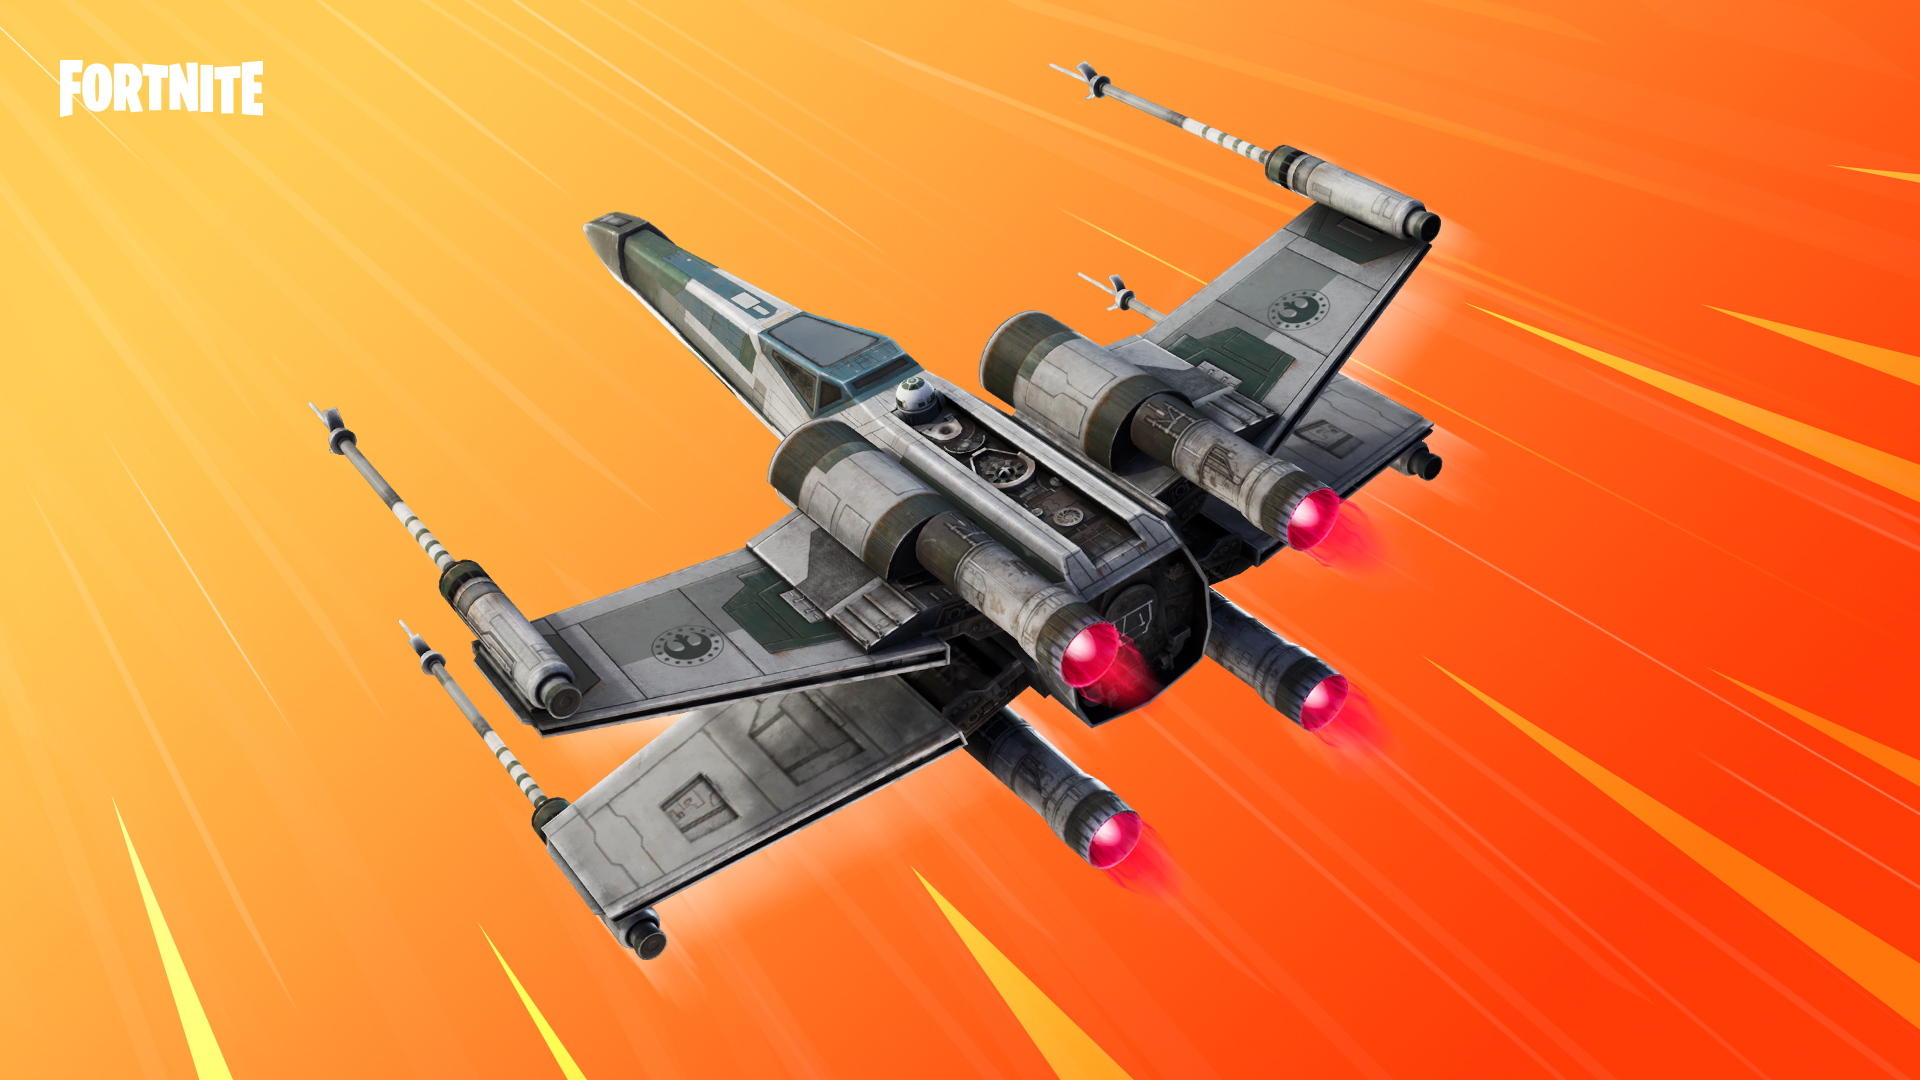 x wing glider comes to fortnite with star wars crossover feature